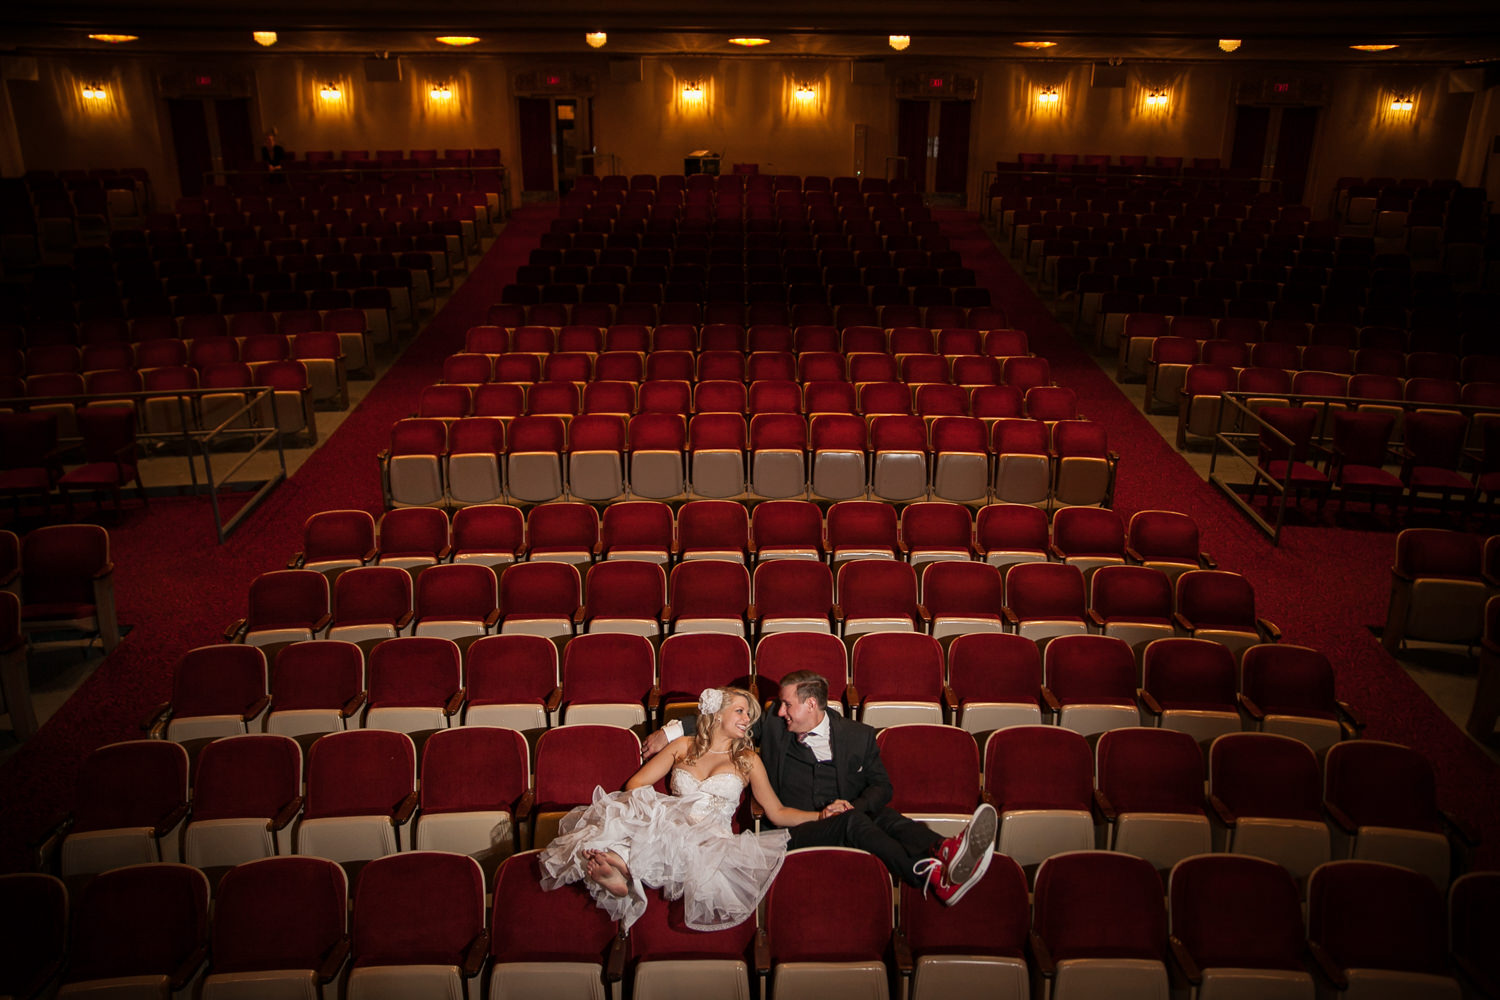 Wedding portrait in The Grand Theater in Wausau.